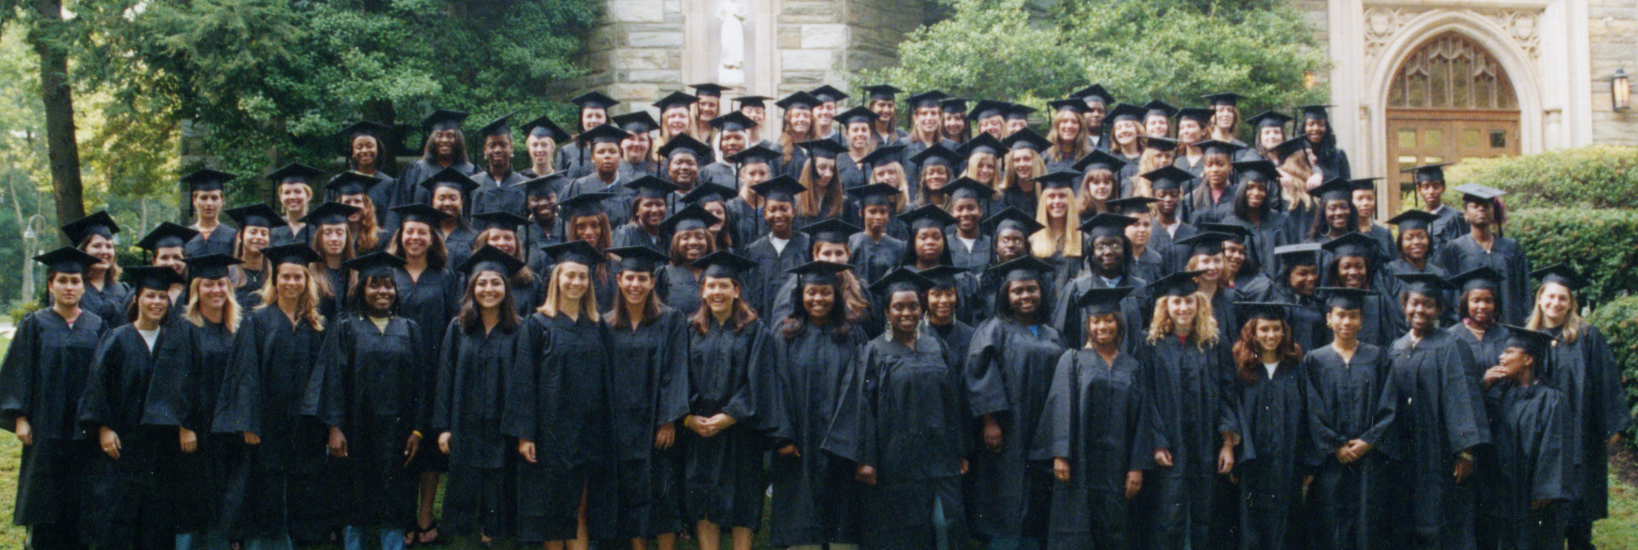 Class of 2008 at Freshman Convocation, 2003